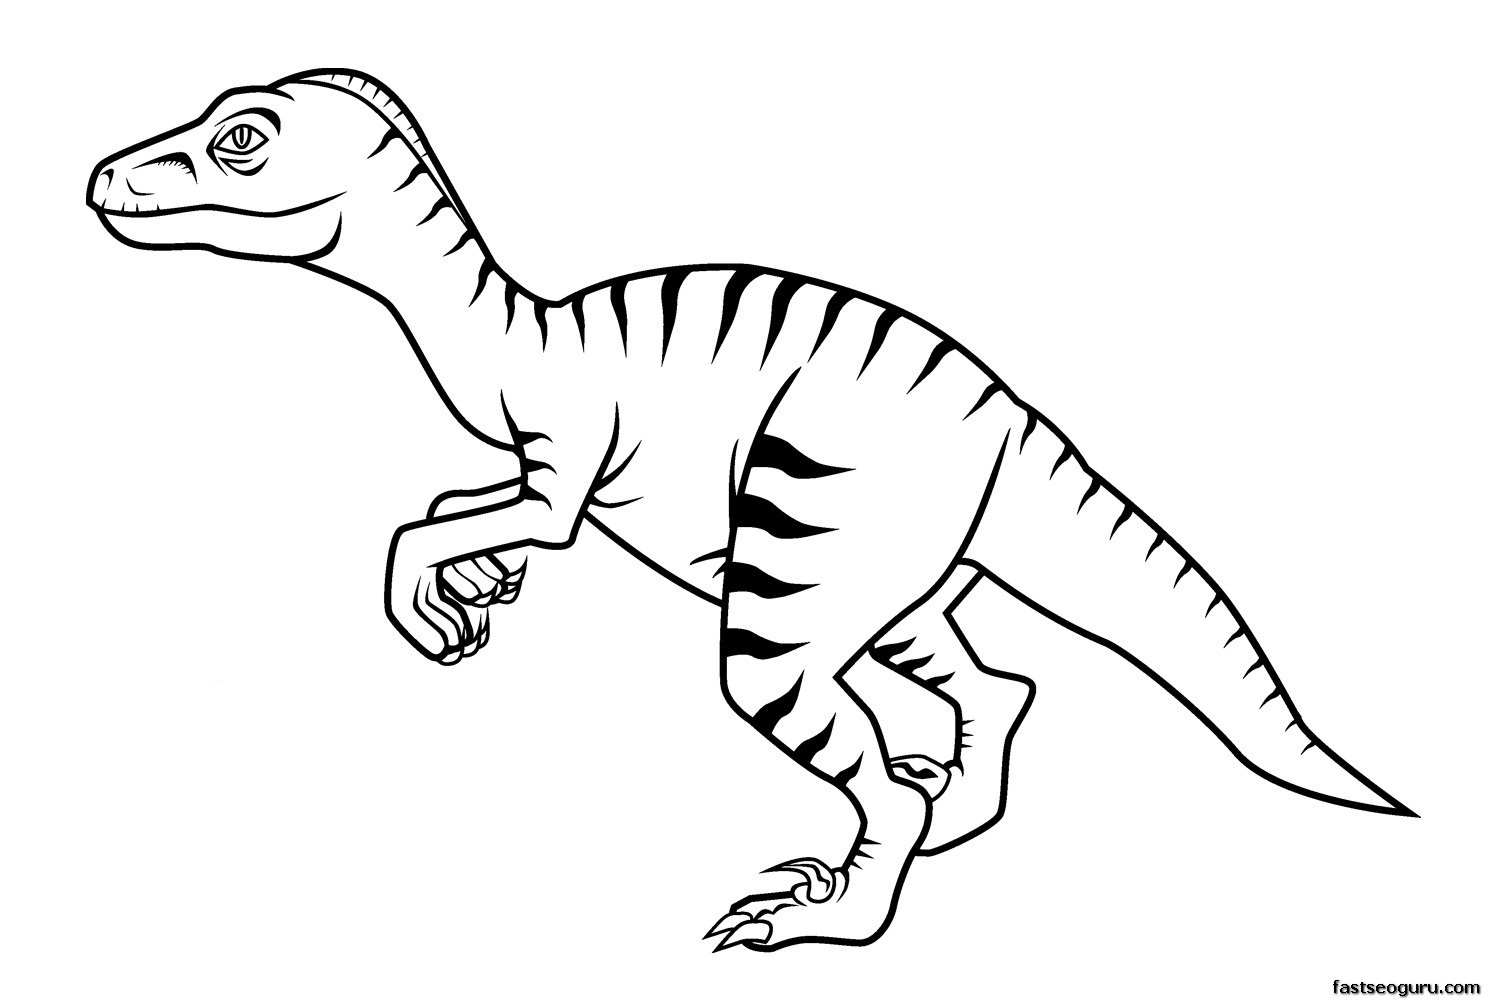 Dinosaur coloring pages to color online - Dinosaur Color Pages